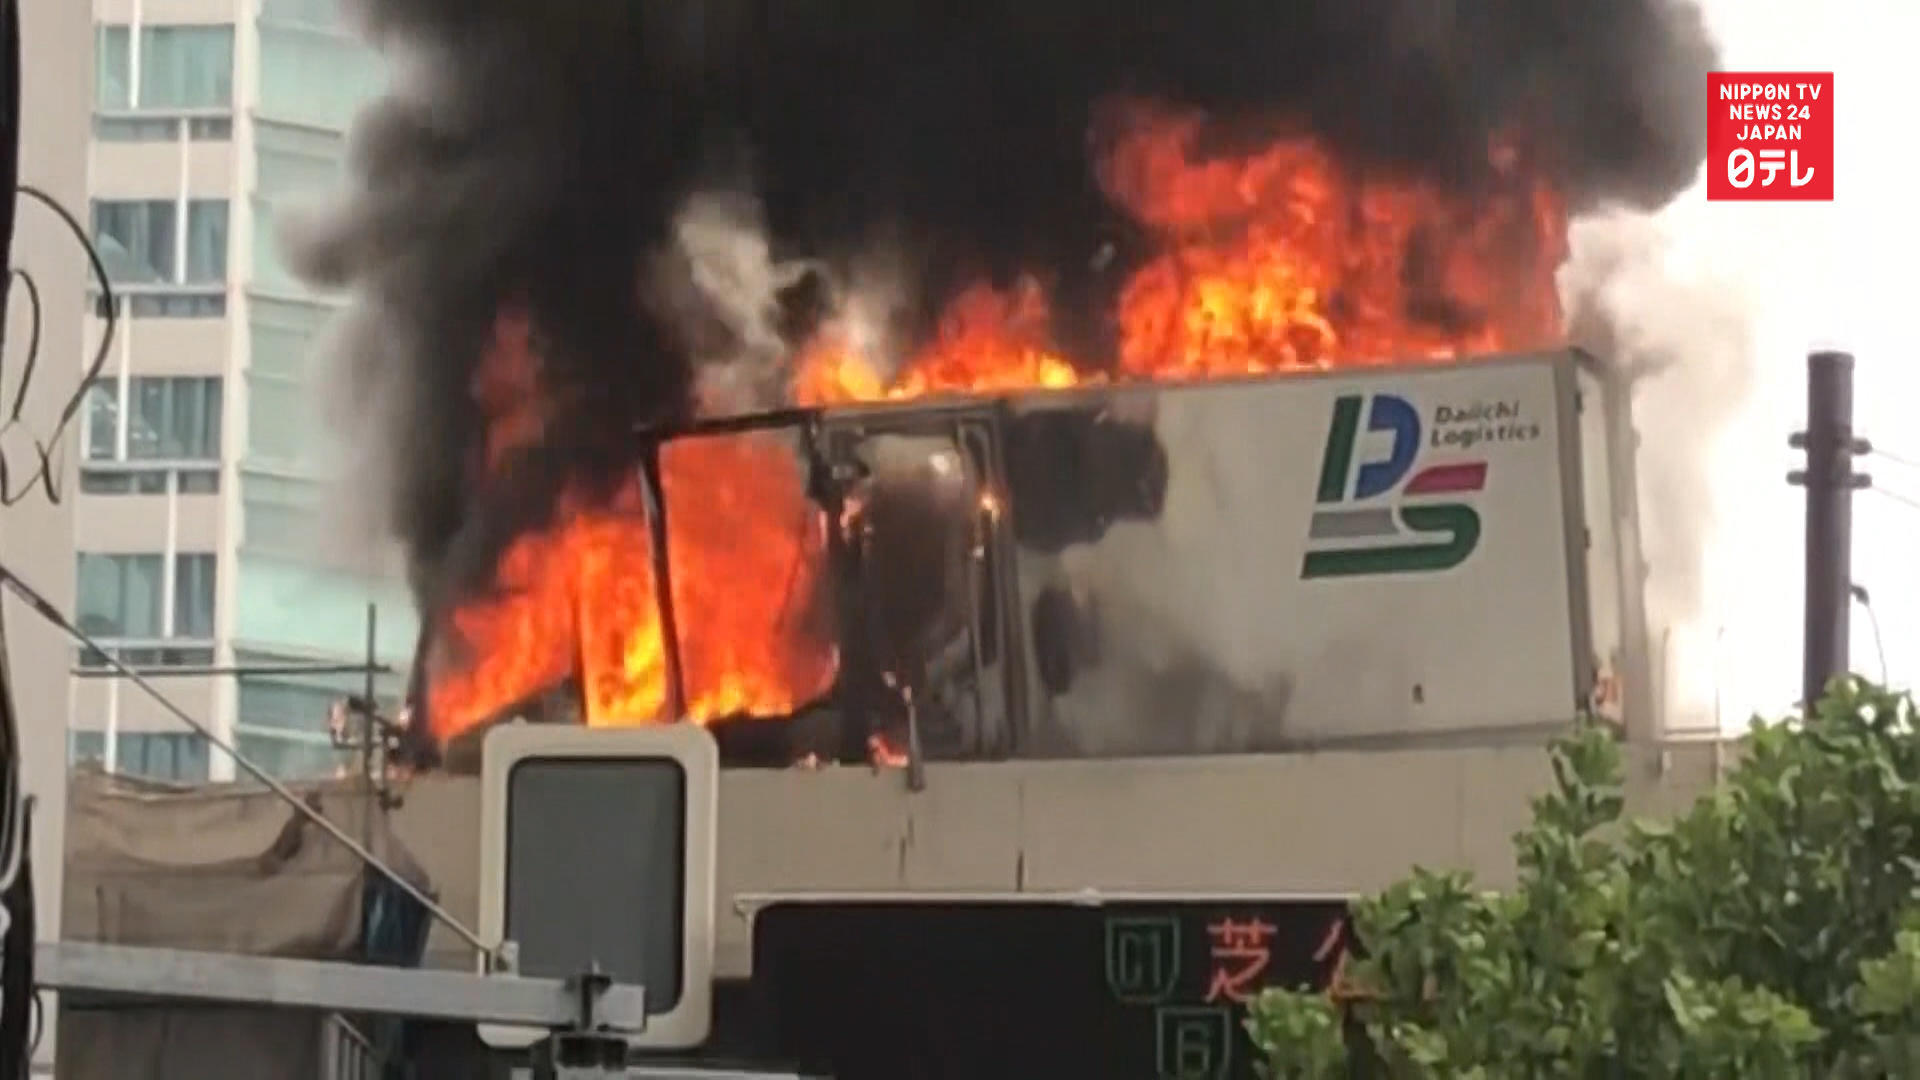 Truck on fire on Tokyo expressway